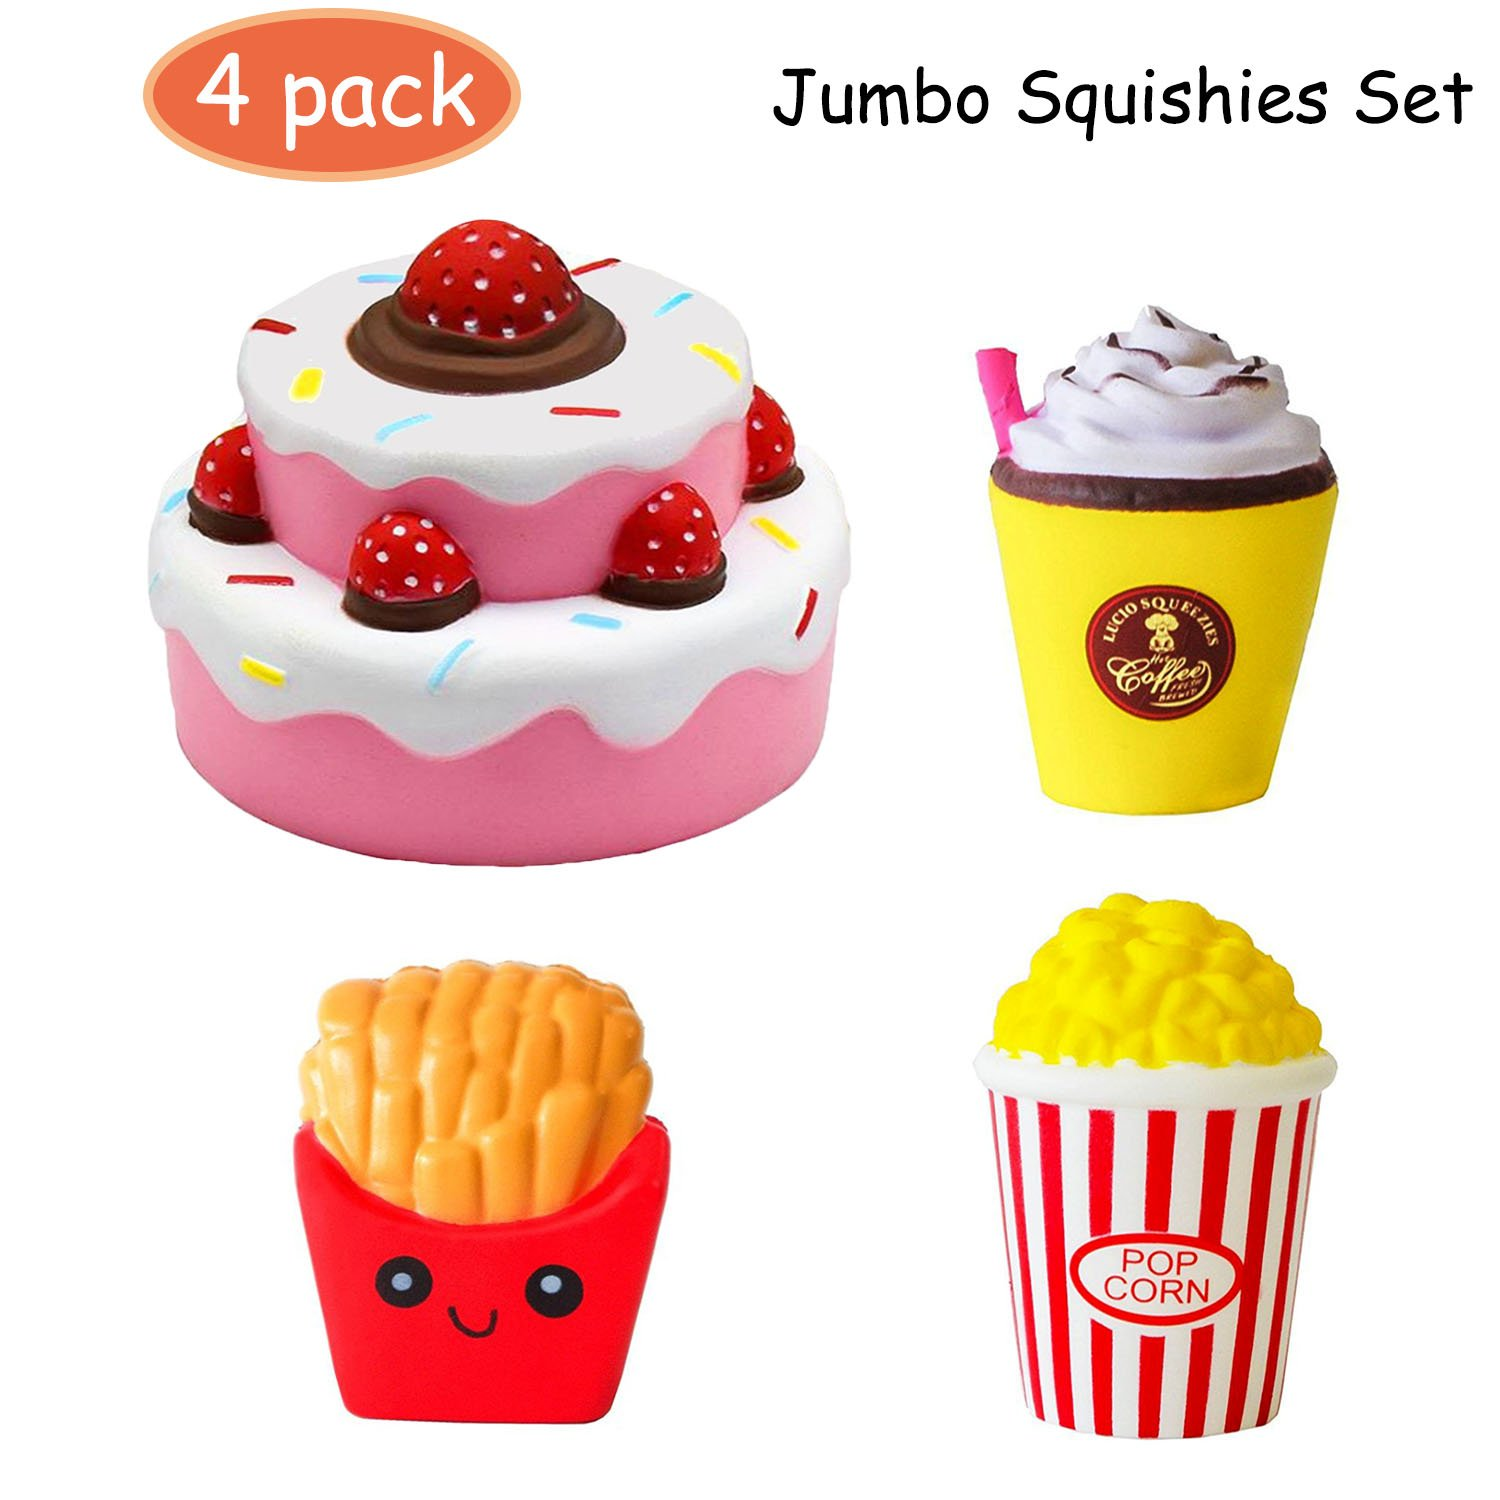 4pc Jumbo Squishies Set Popcorn French Fries Coffee Cup Scented Strawberry Cake Slow Rising Squeeze Squishies Toy Stress Relief Decorations Toy Great Gift for Adults and Kids, Party Birthday Toys